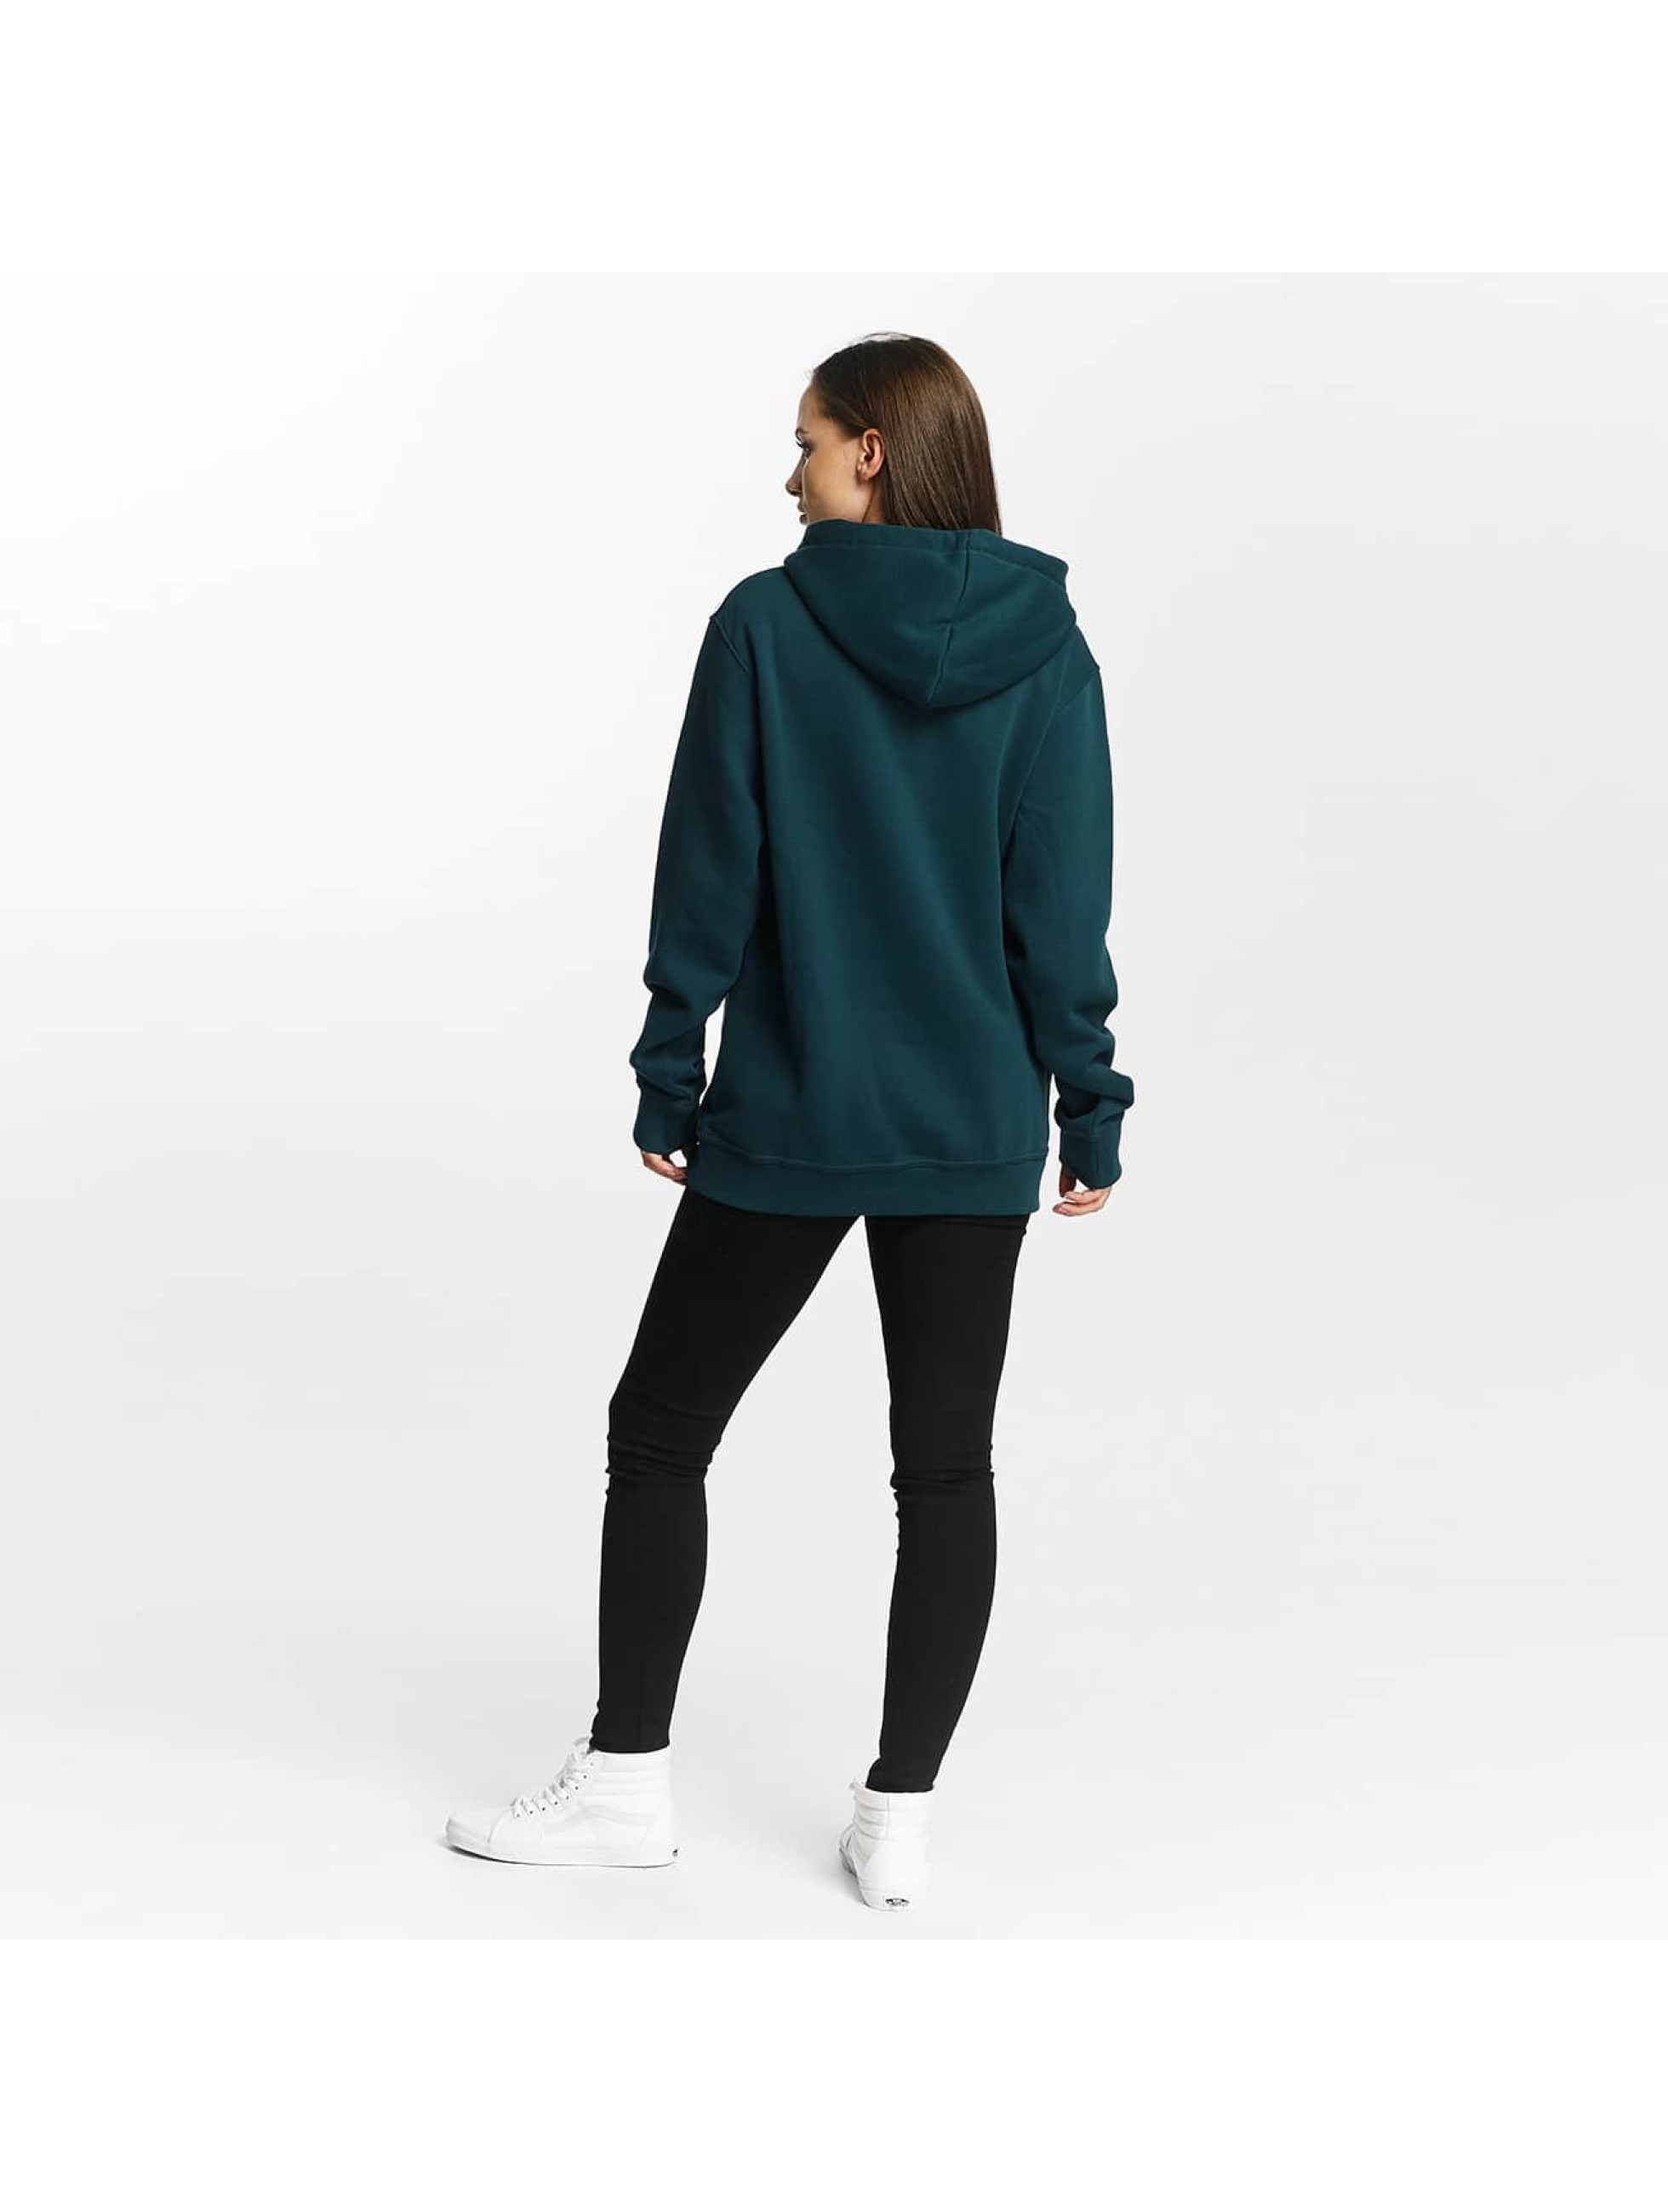 Cyprime Hoodies Cyber Oversized turkis